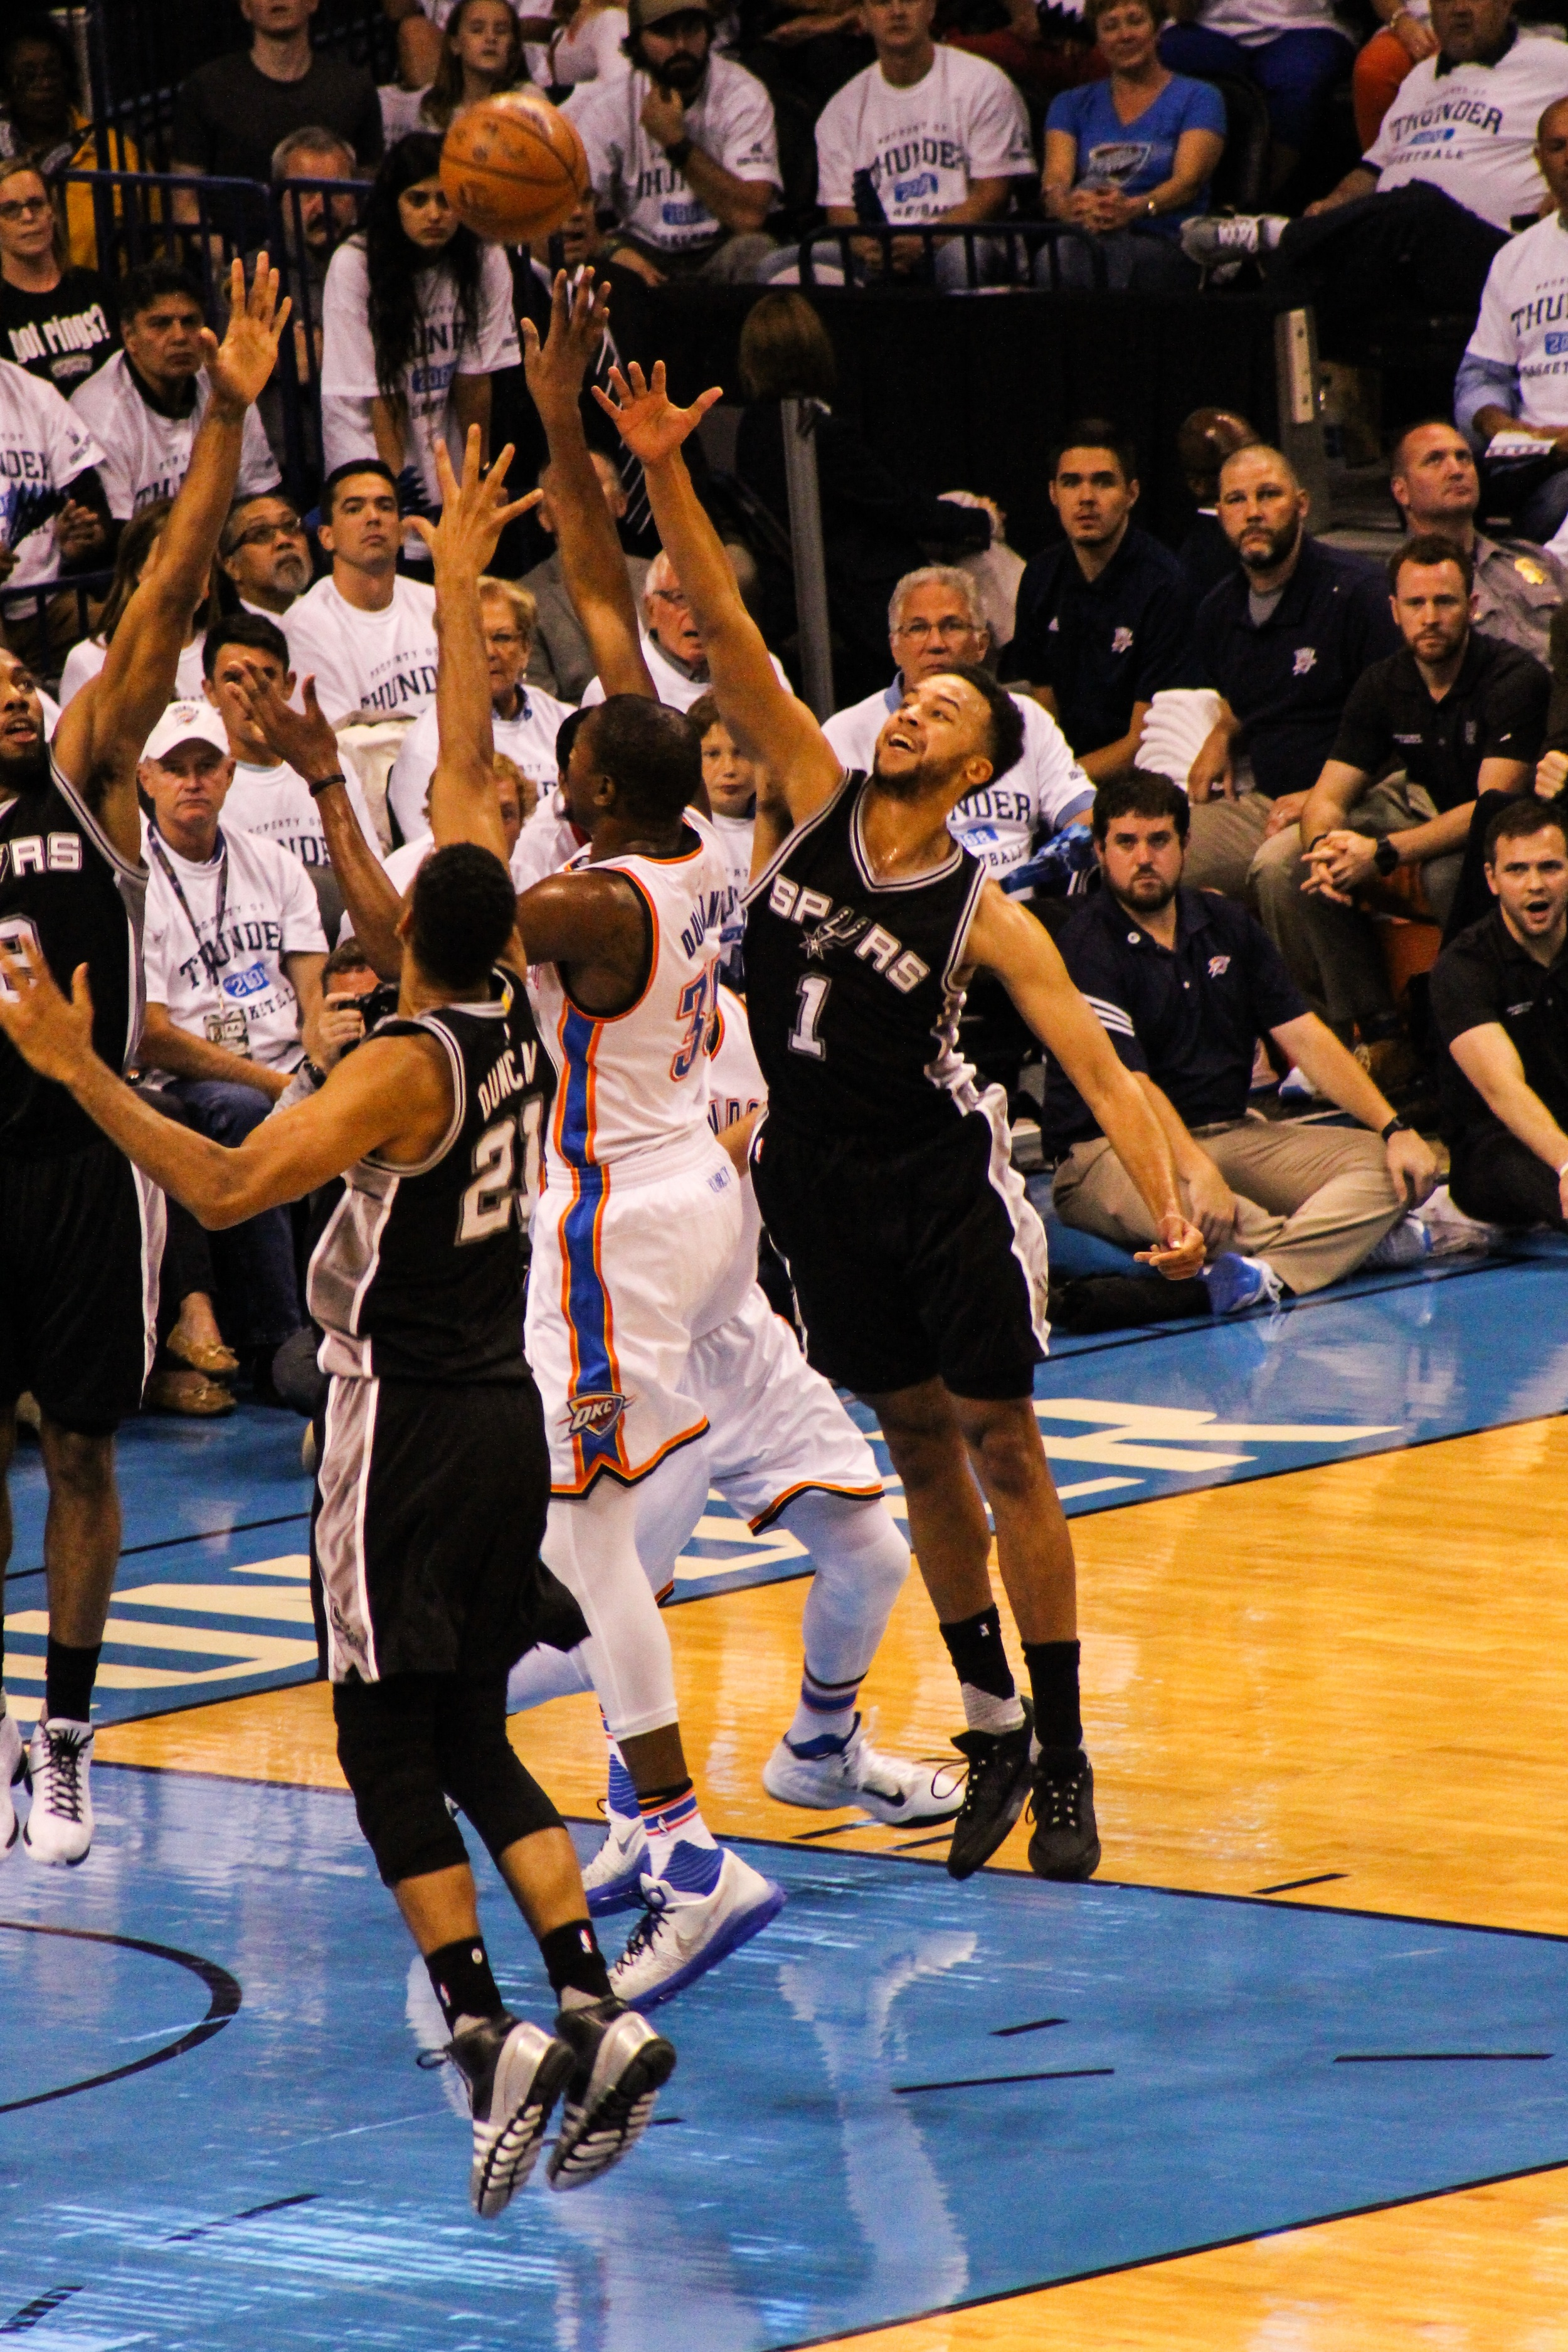 Thunder forward Kevin Durant driving into the lane for a floater over Spurs center Tim Duncan and forward Kyle Anderson. (Photo By Sam Murch/InsideThunder.com)